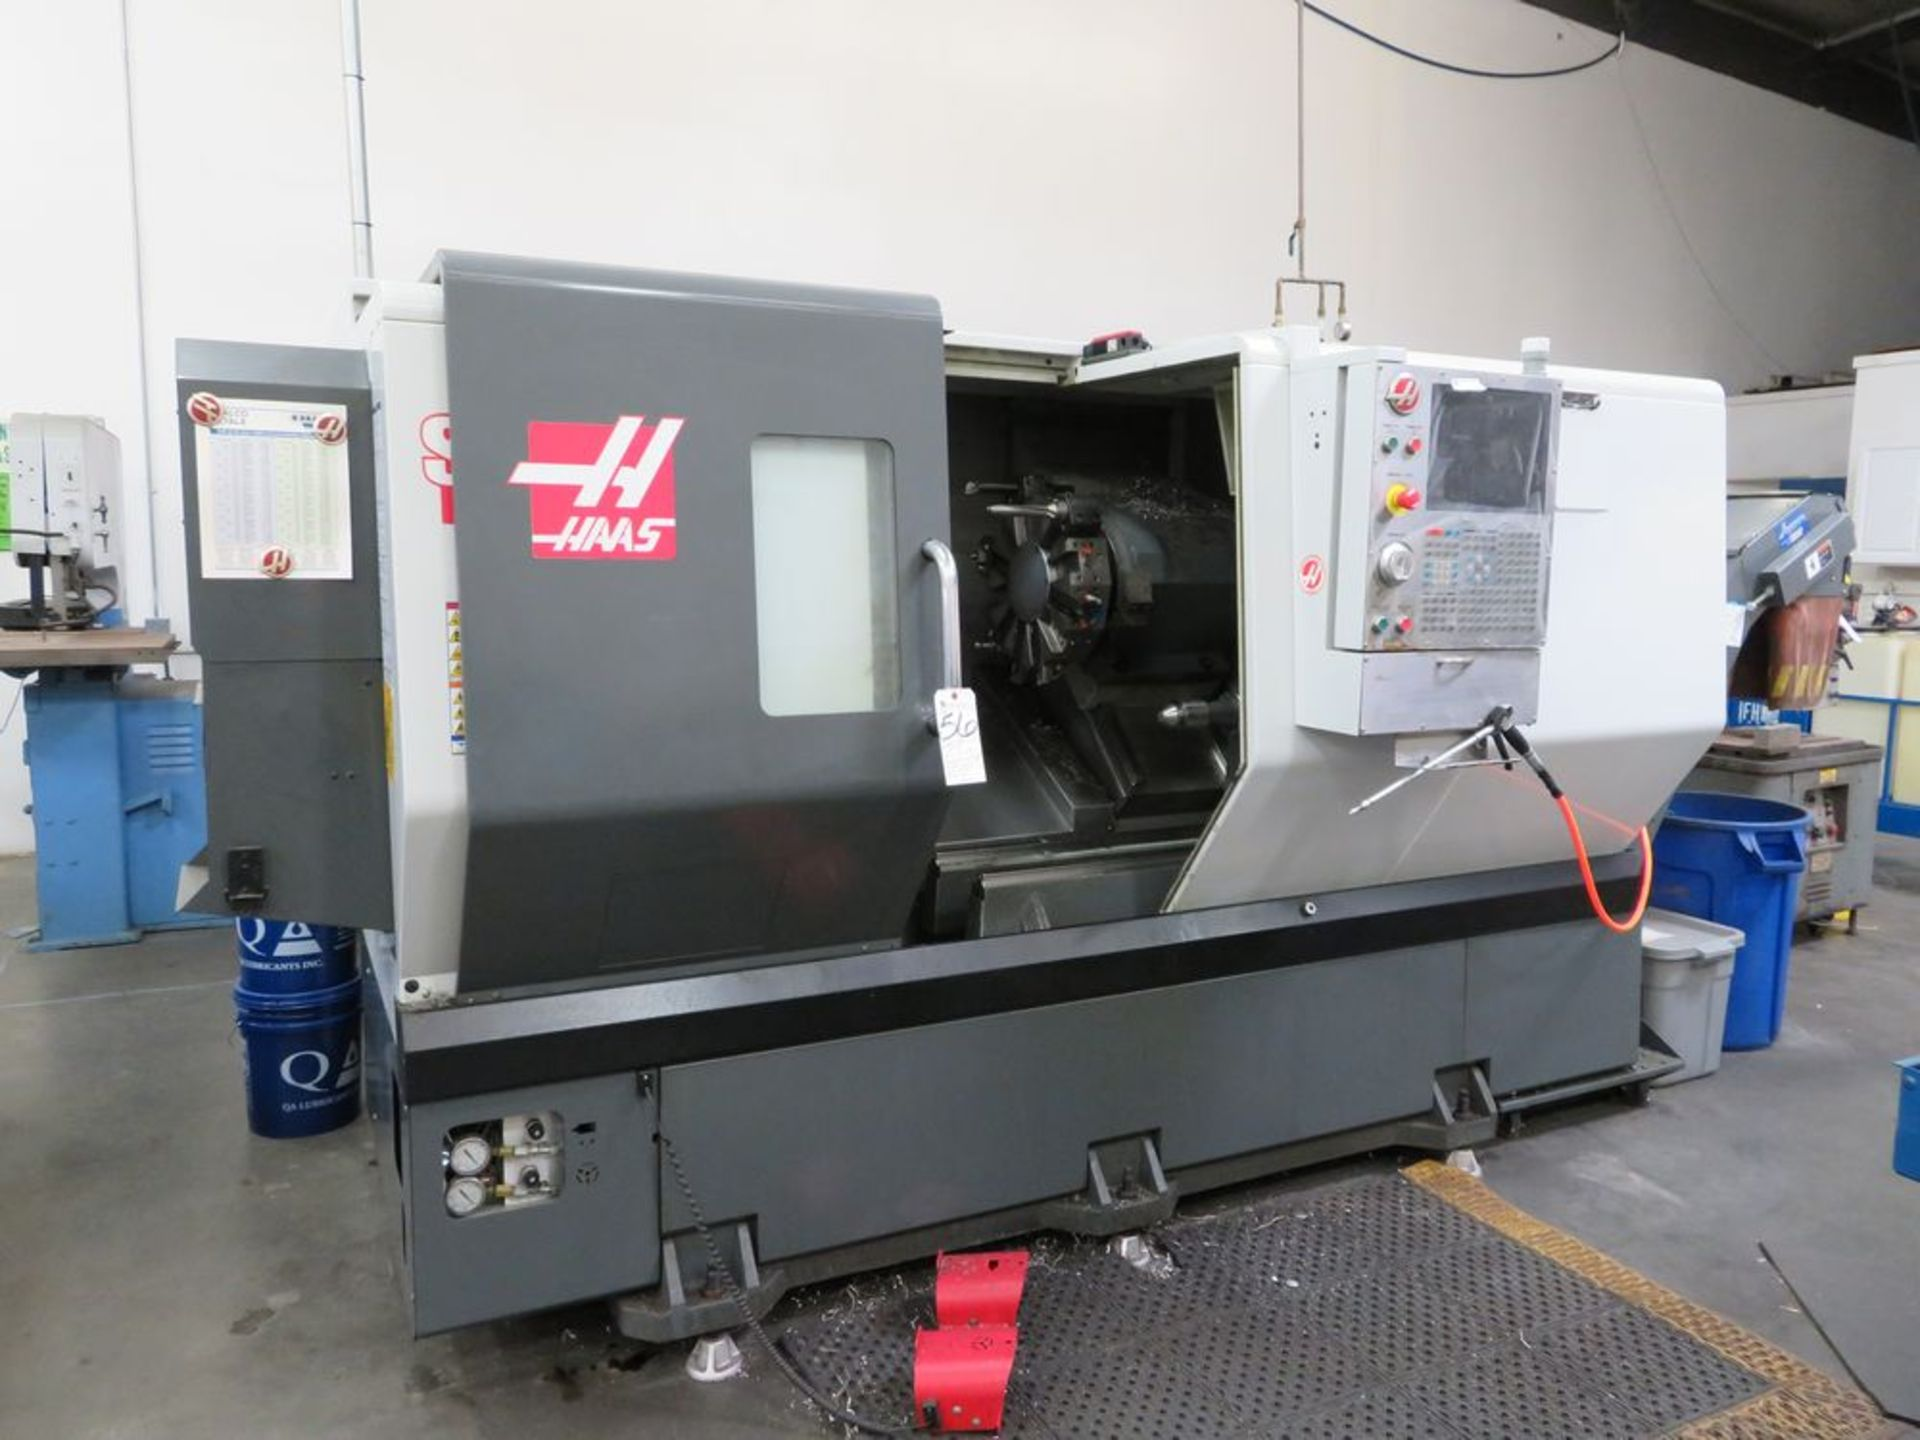 Lot 56 - (May 2013) Haas mod. ST30, CNC Turning Center w/ Chip Conveyor, Haas CNC Controls, Tail Stock, 12-